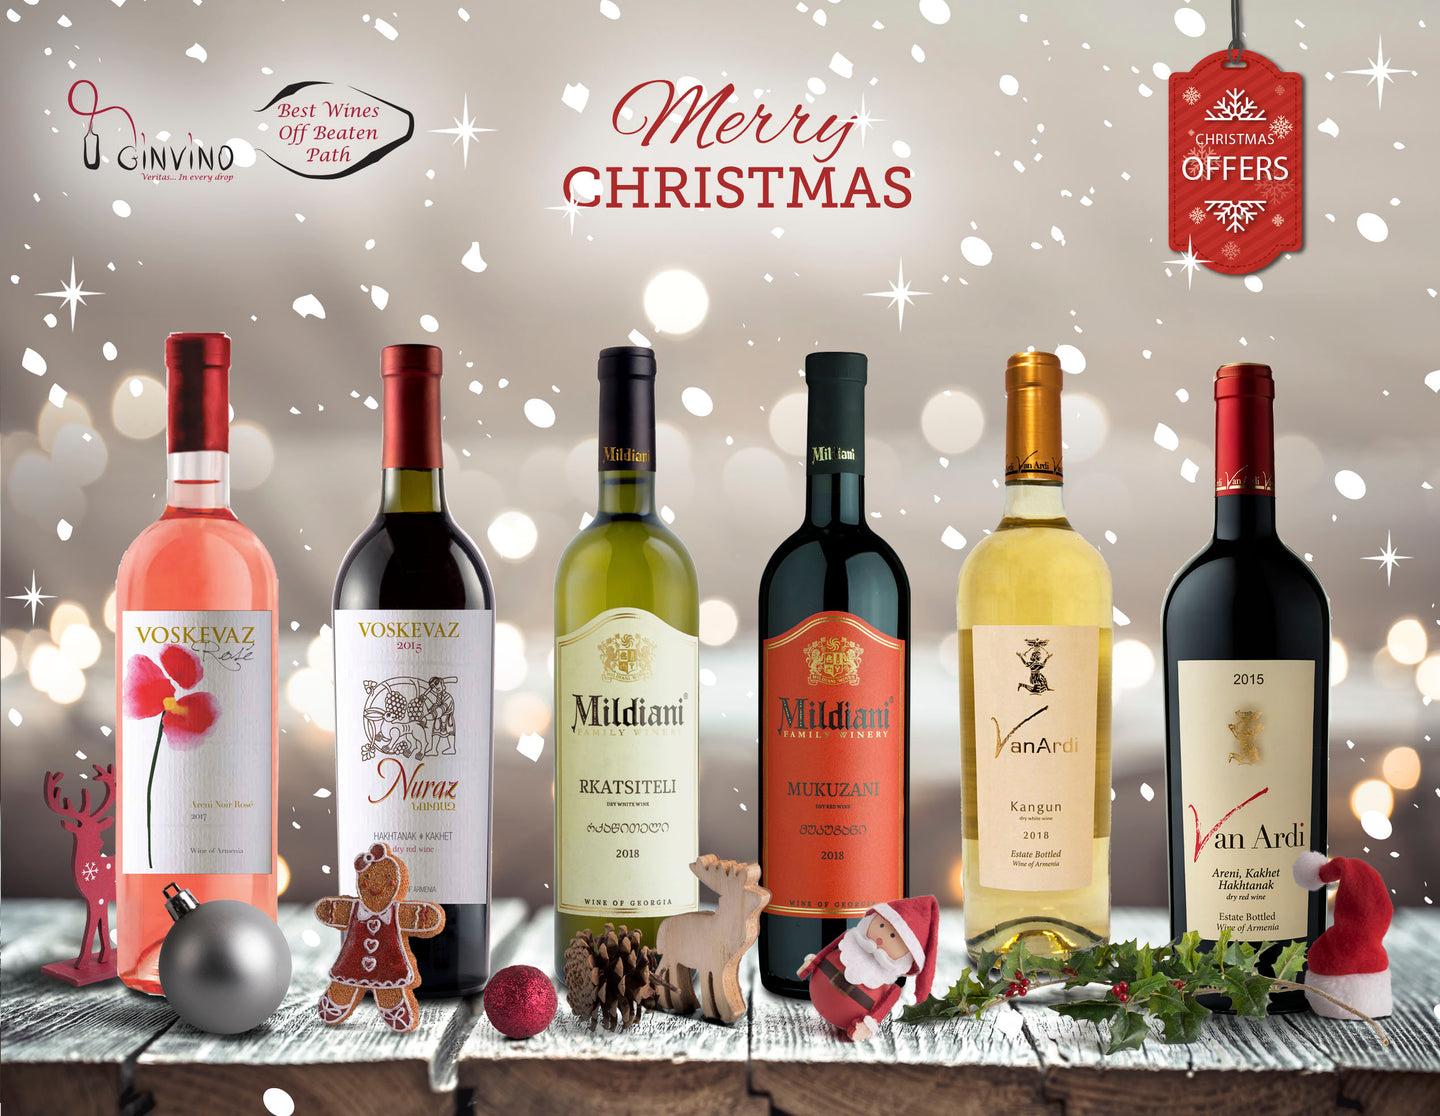 GInVino Christmas Santa Box Offer